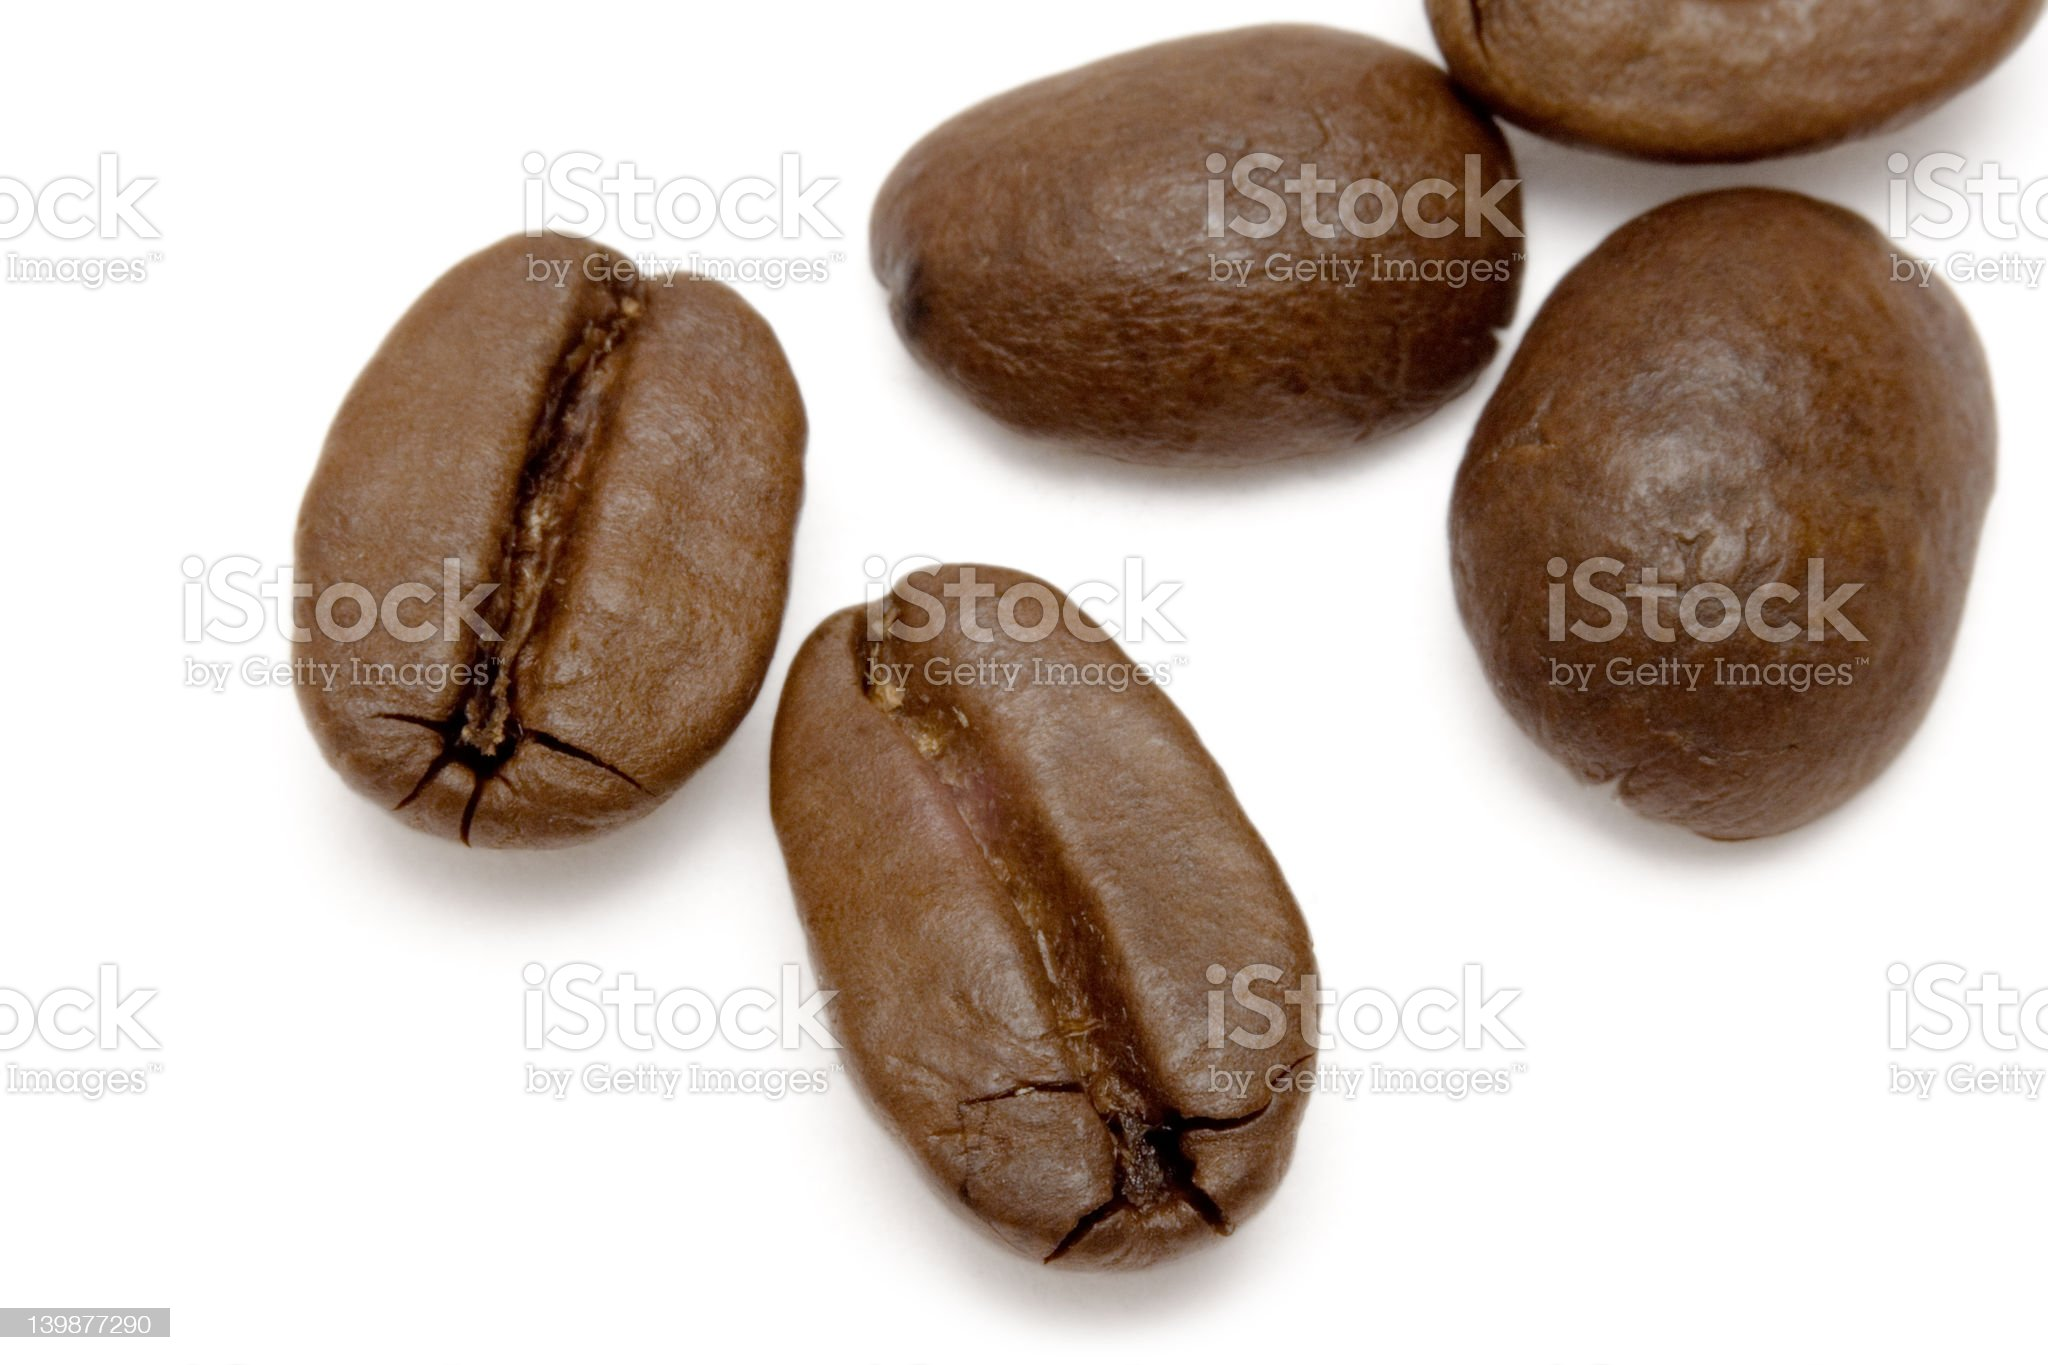 Scattered Coffee Beans royalty-free stock photo